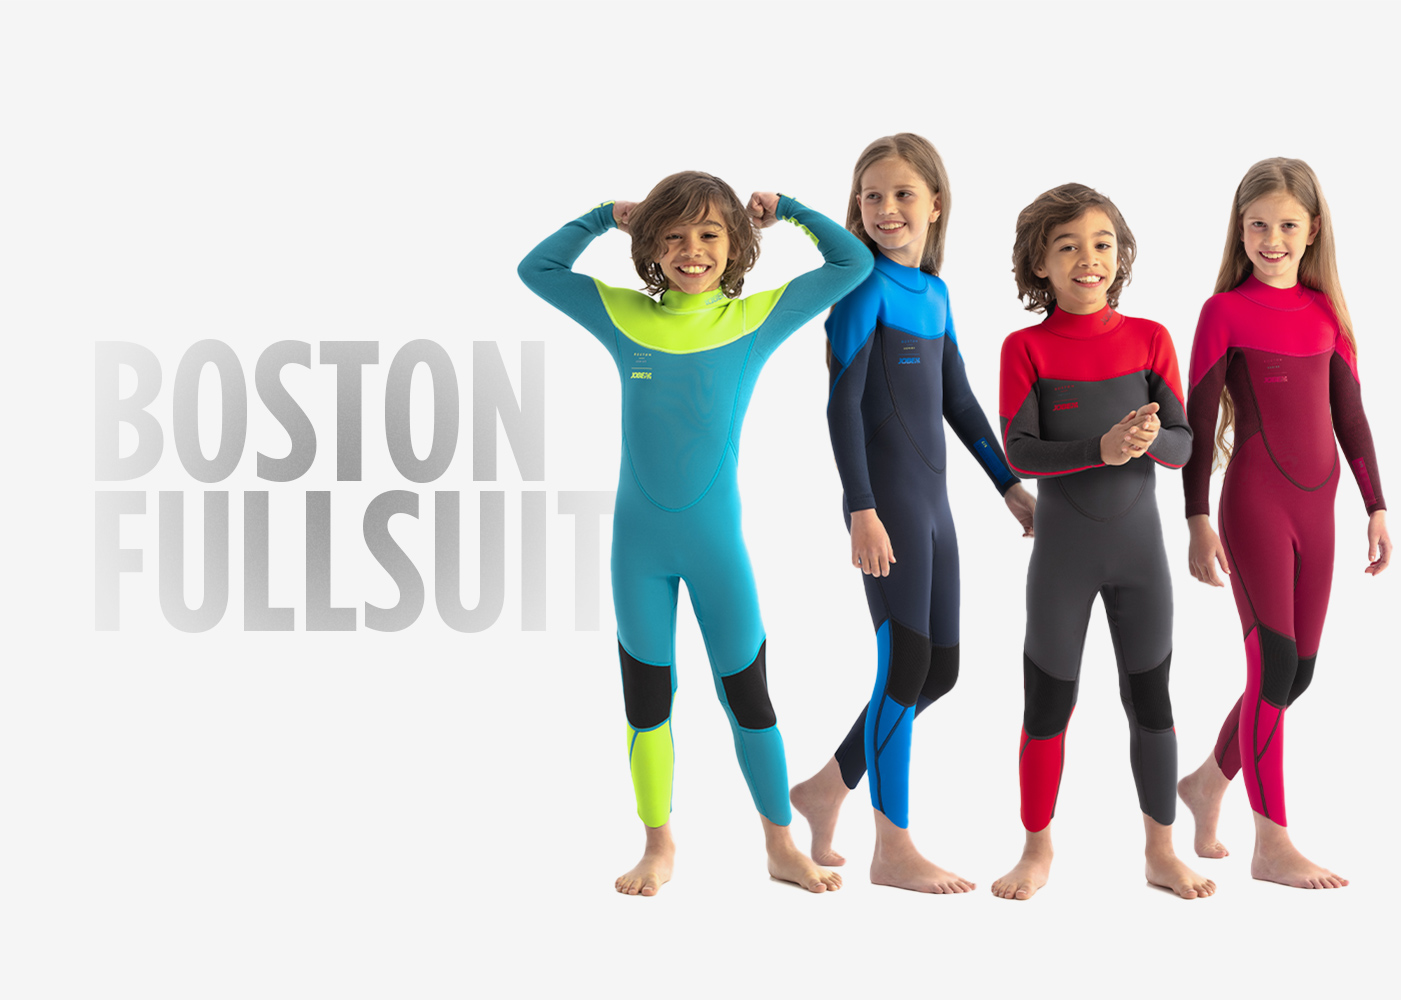 Jobe Boston fullsuit Series